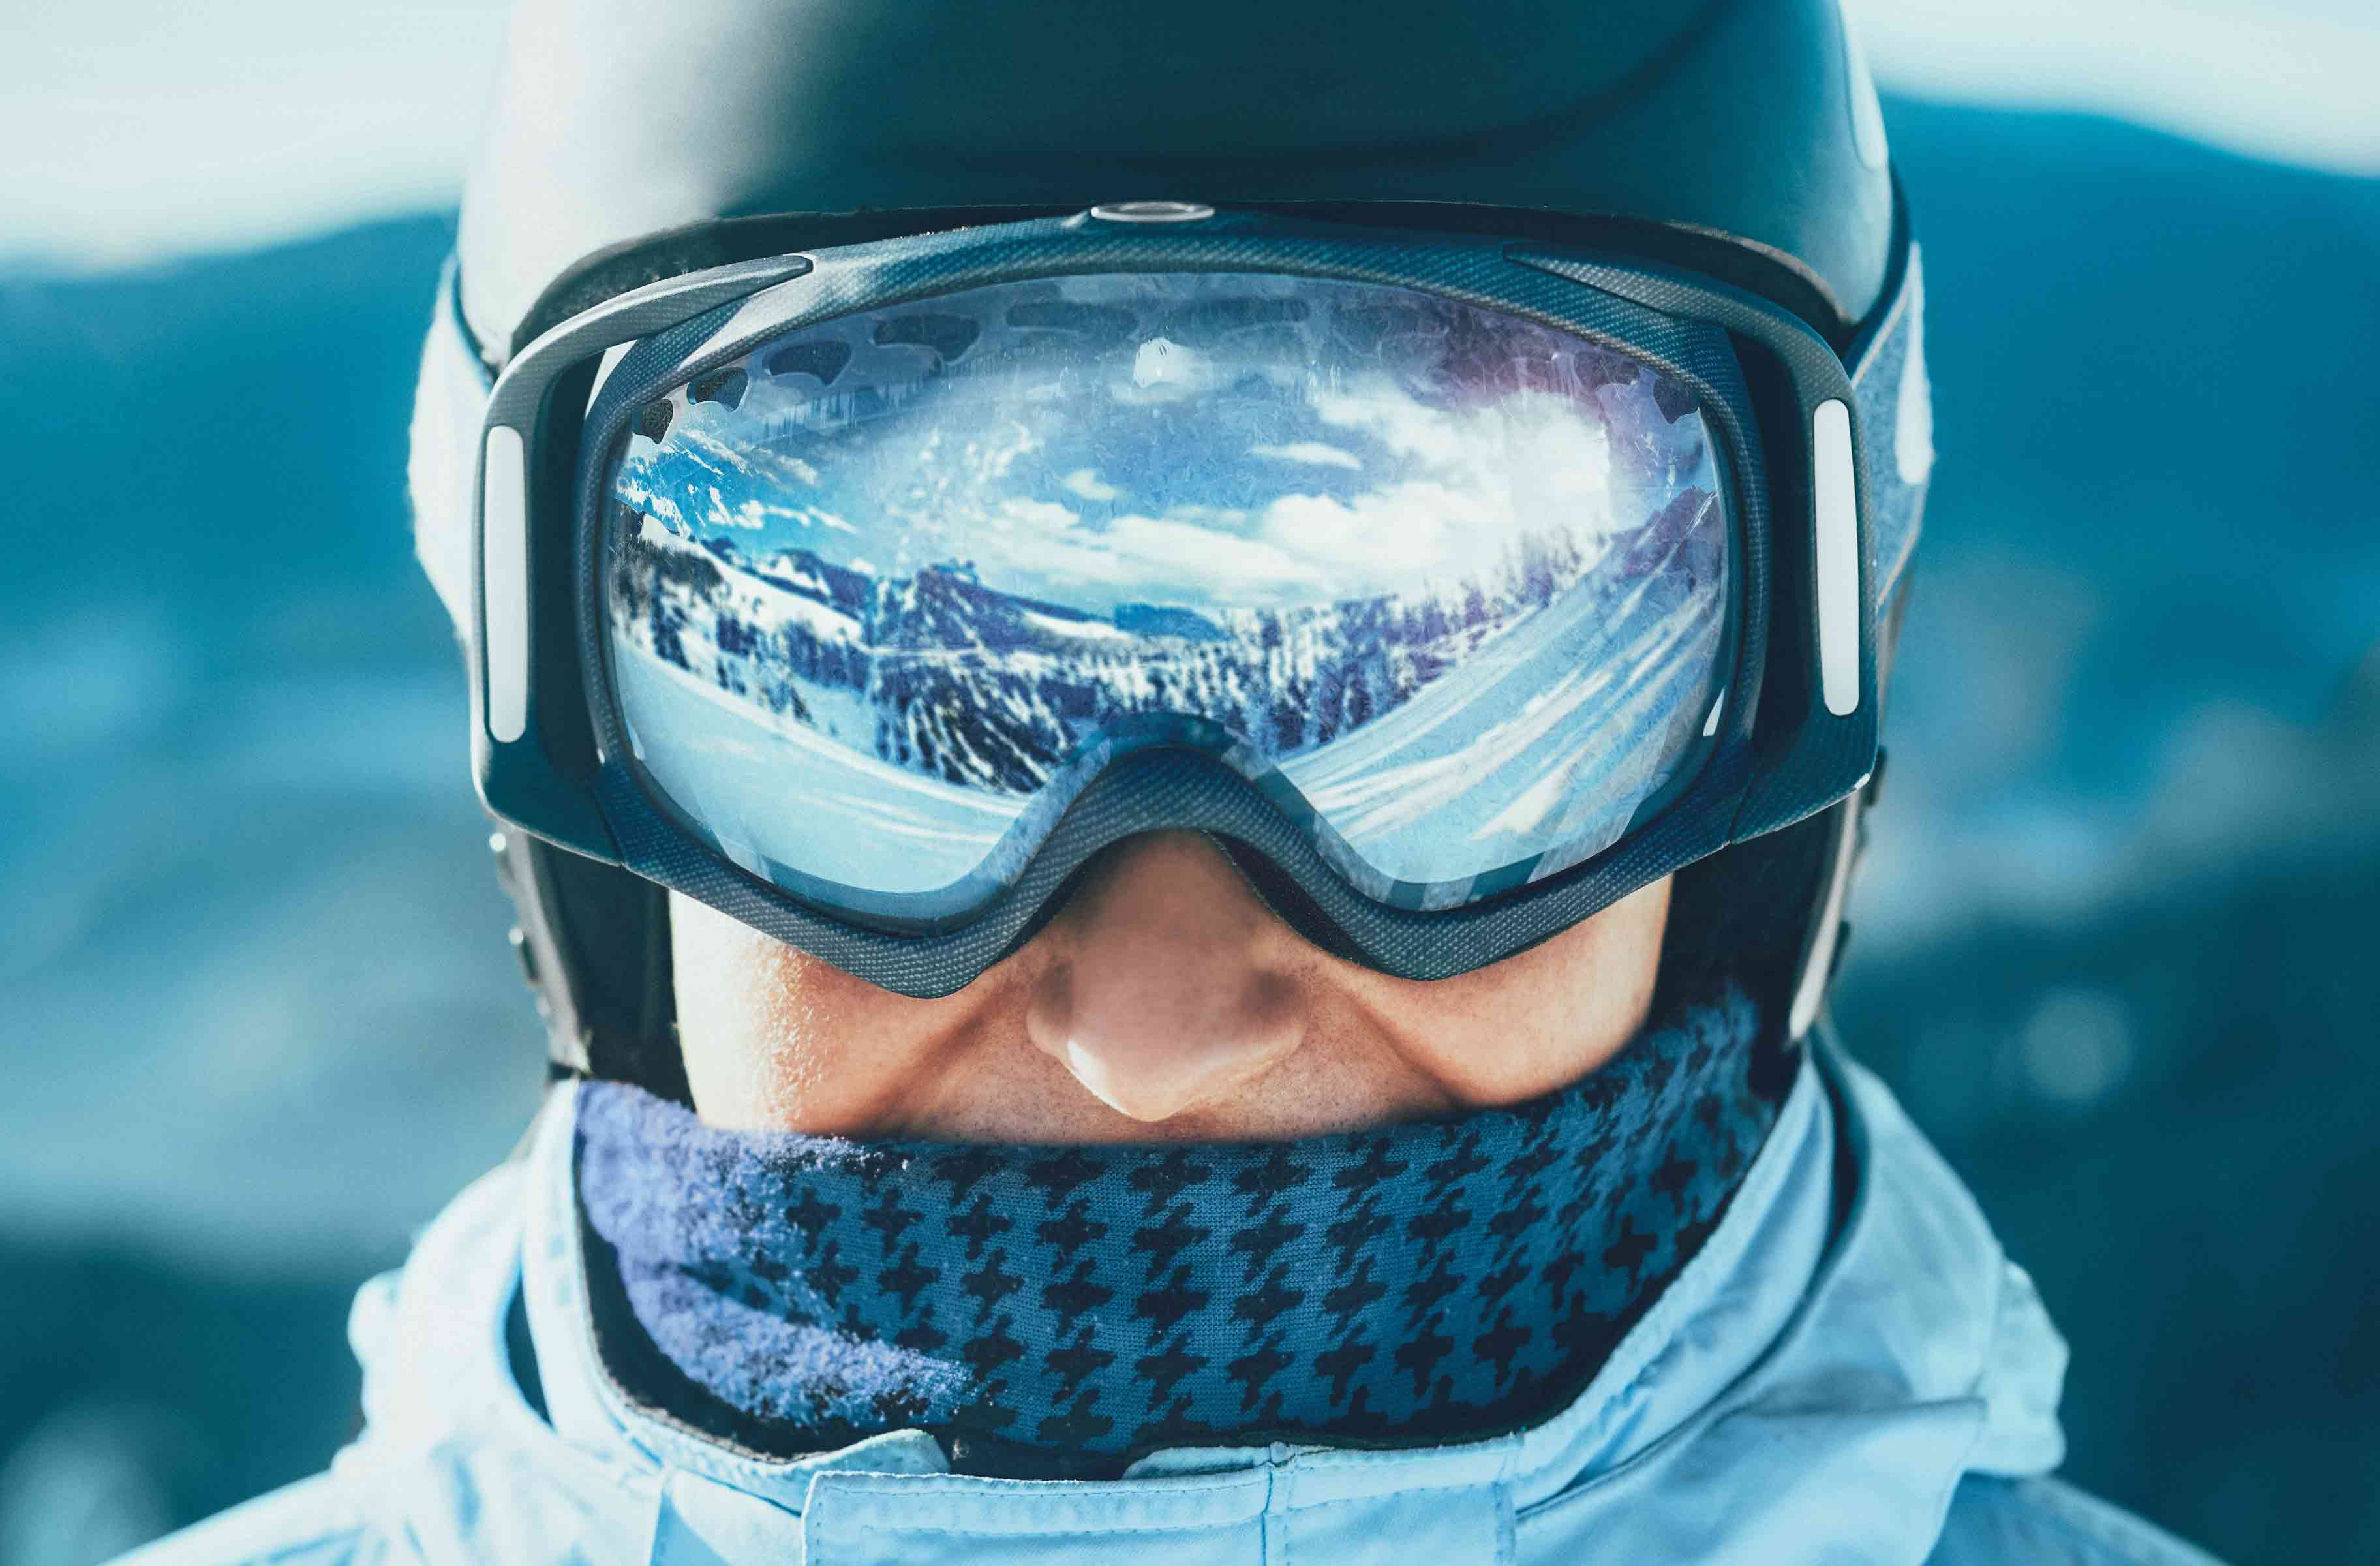 Taking Care of Your Eyes During Winter